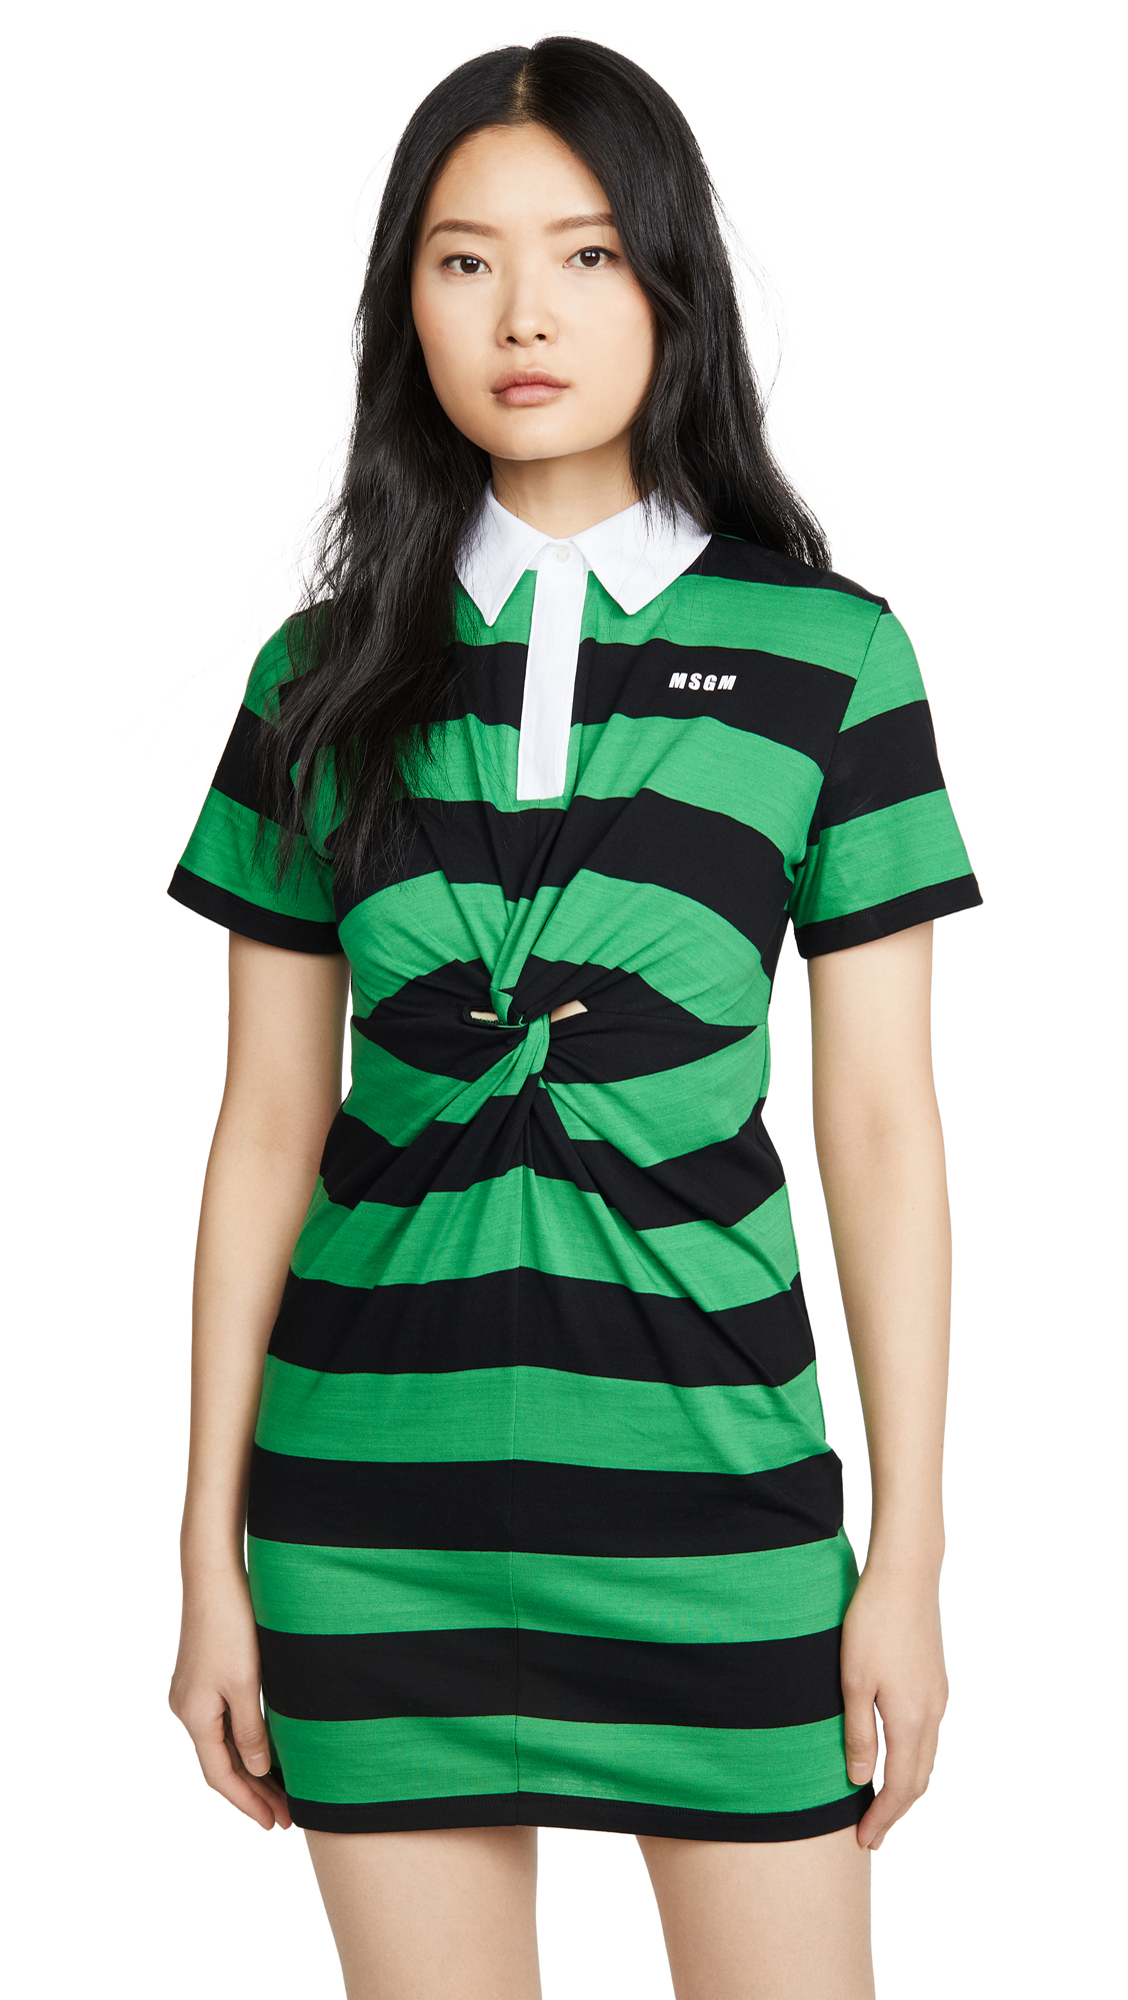 MSGM Short Sleeve Rugby Dress - 55% Off Sale